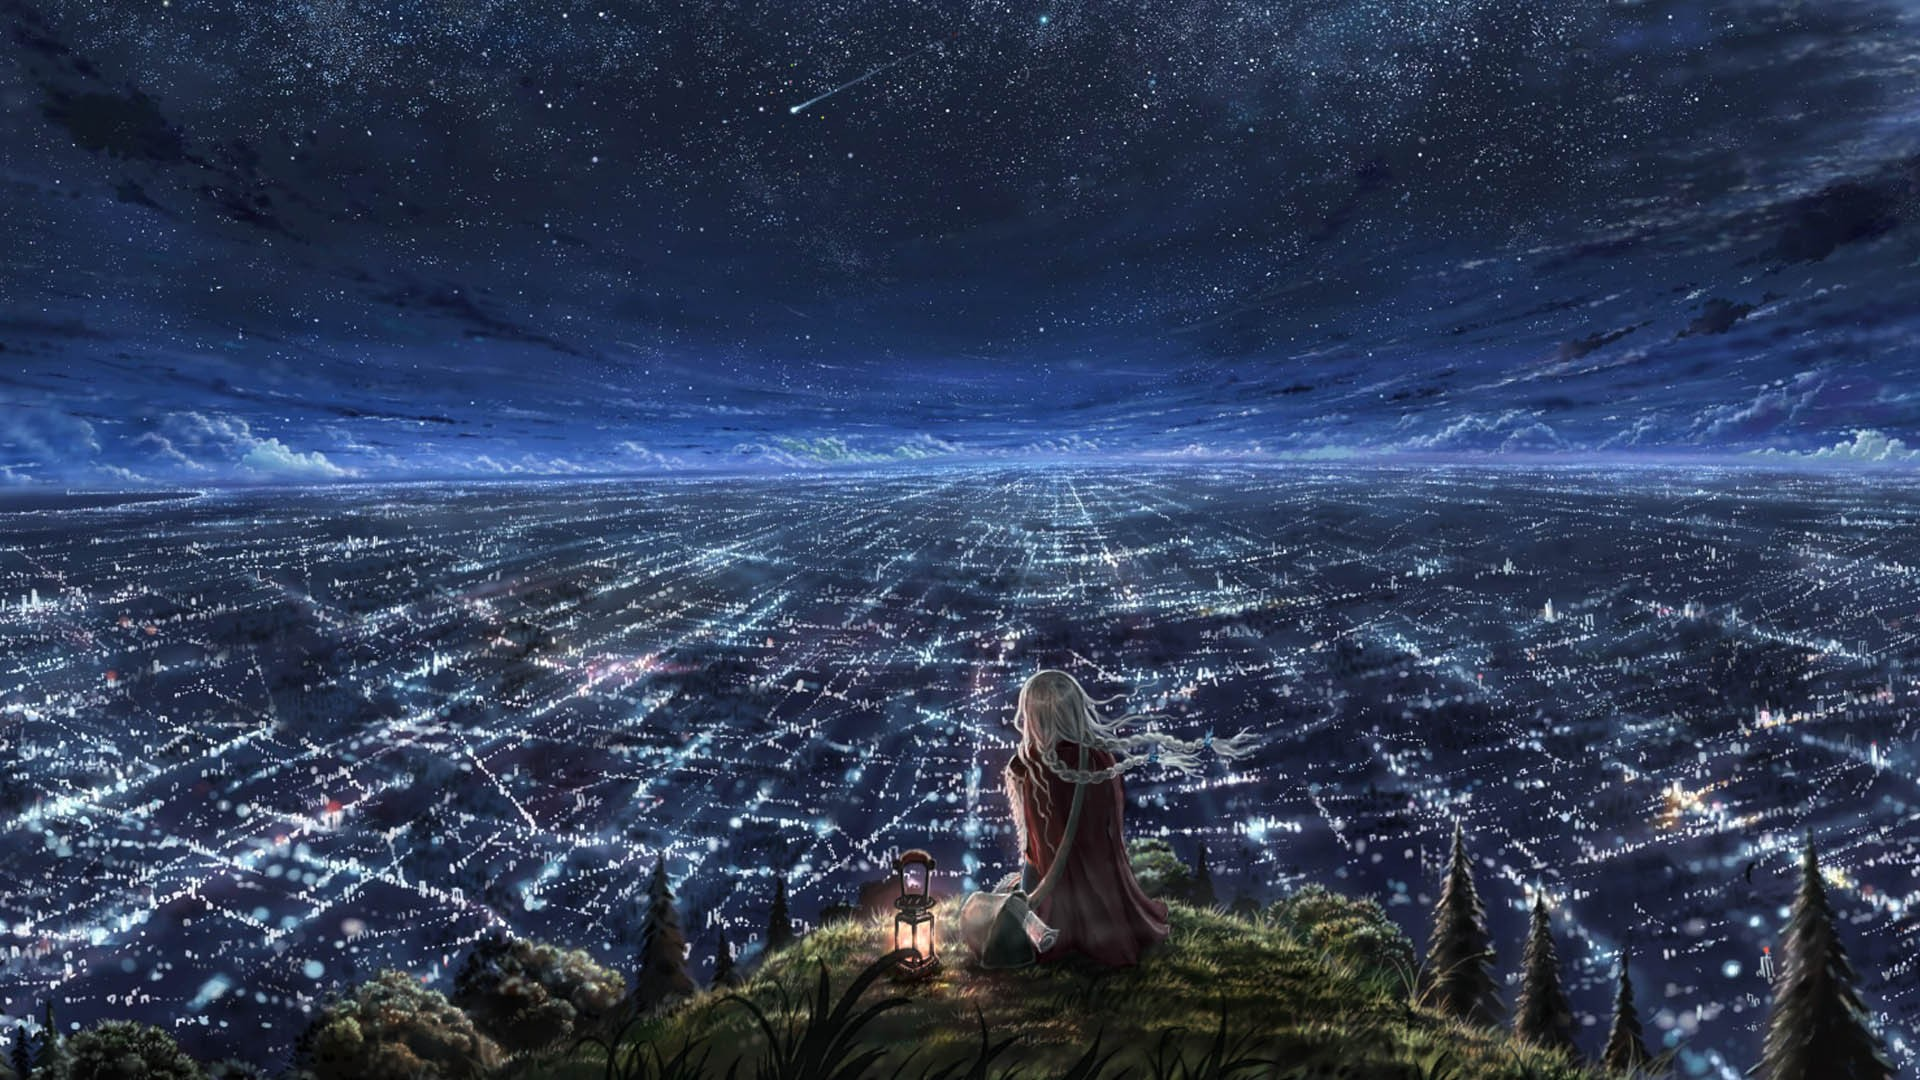 Mirrored night sky hd wallpaper background image - Anime sky background ...